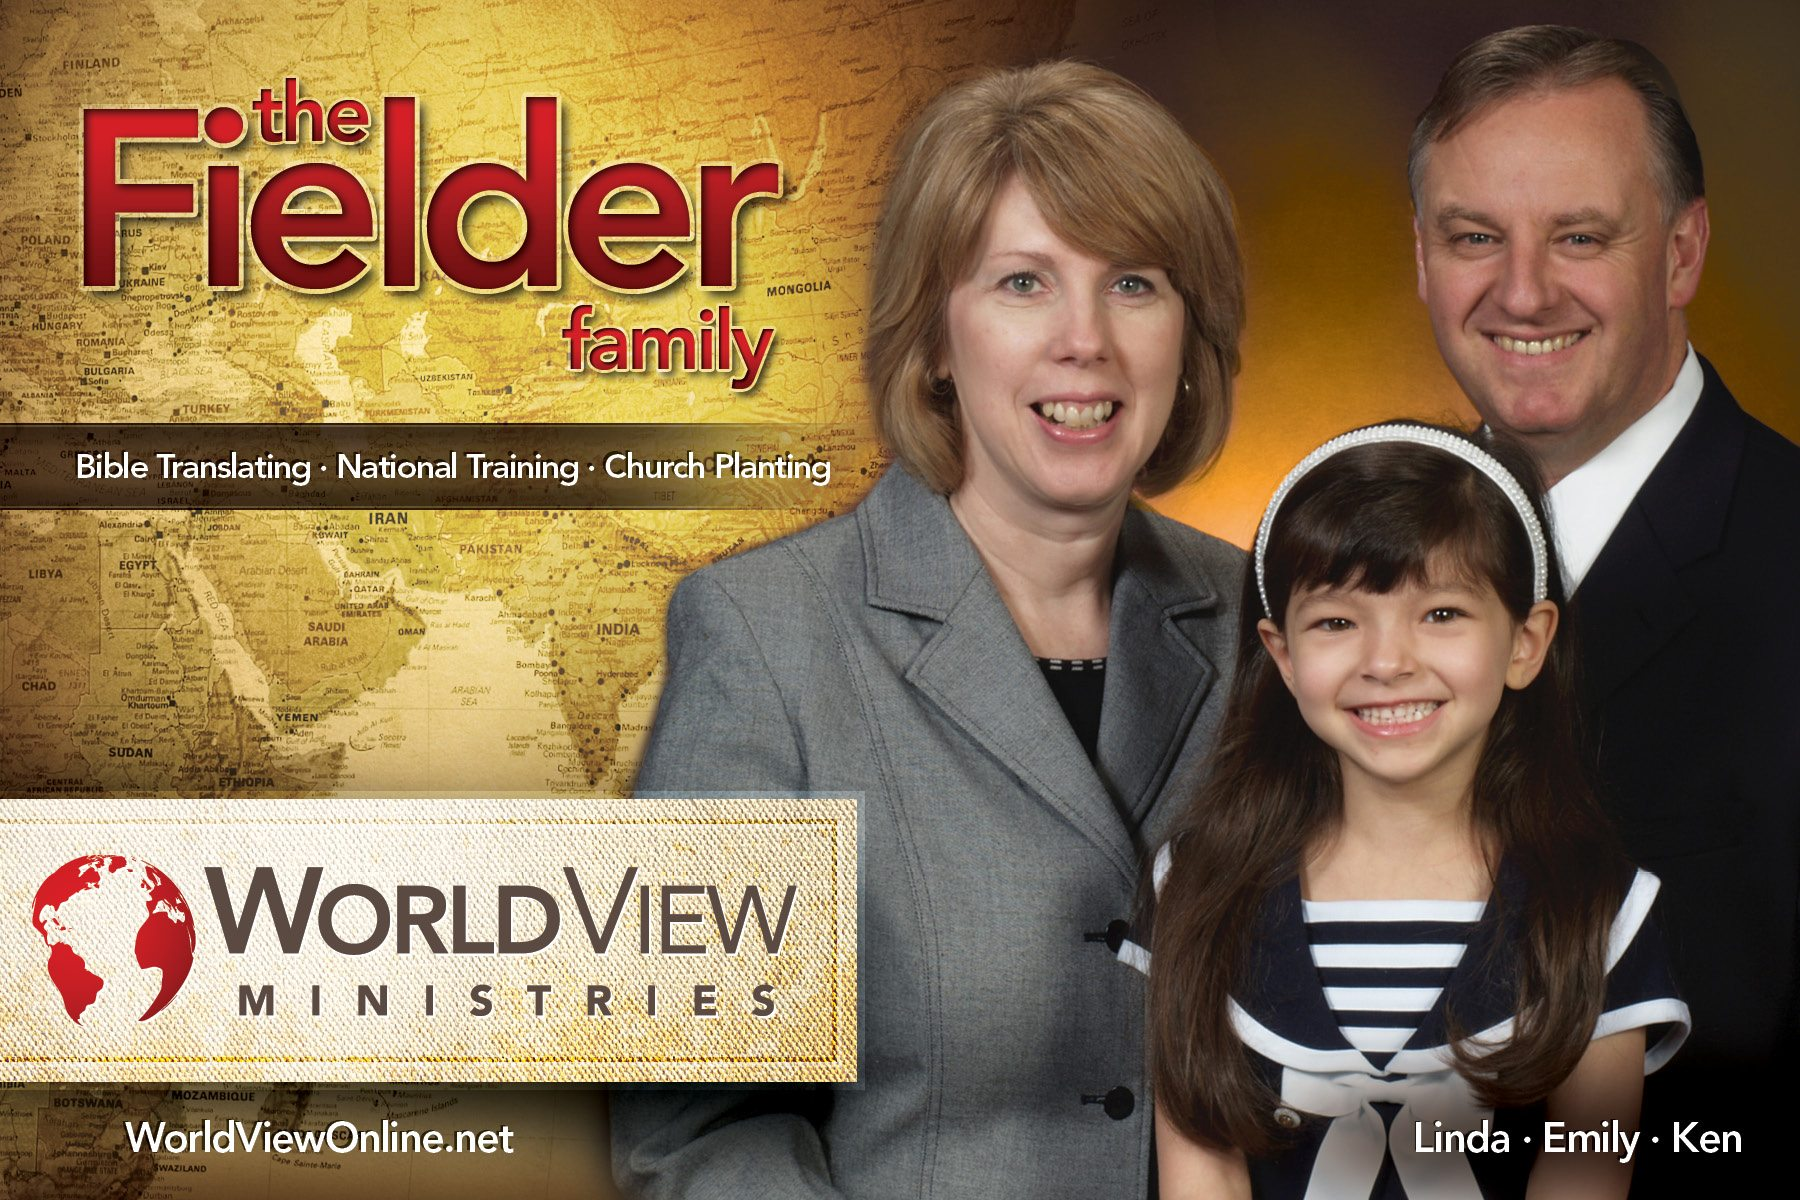 11514-WorldView-Ministries-CARD_FielderK